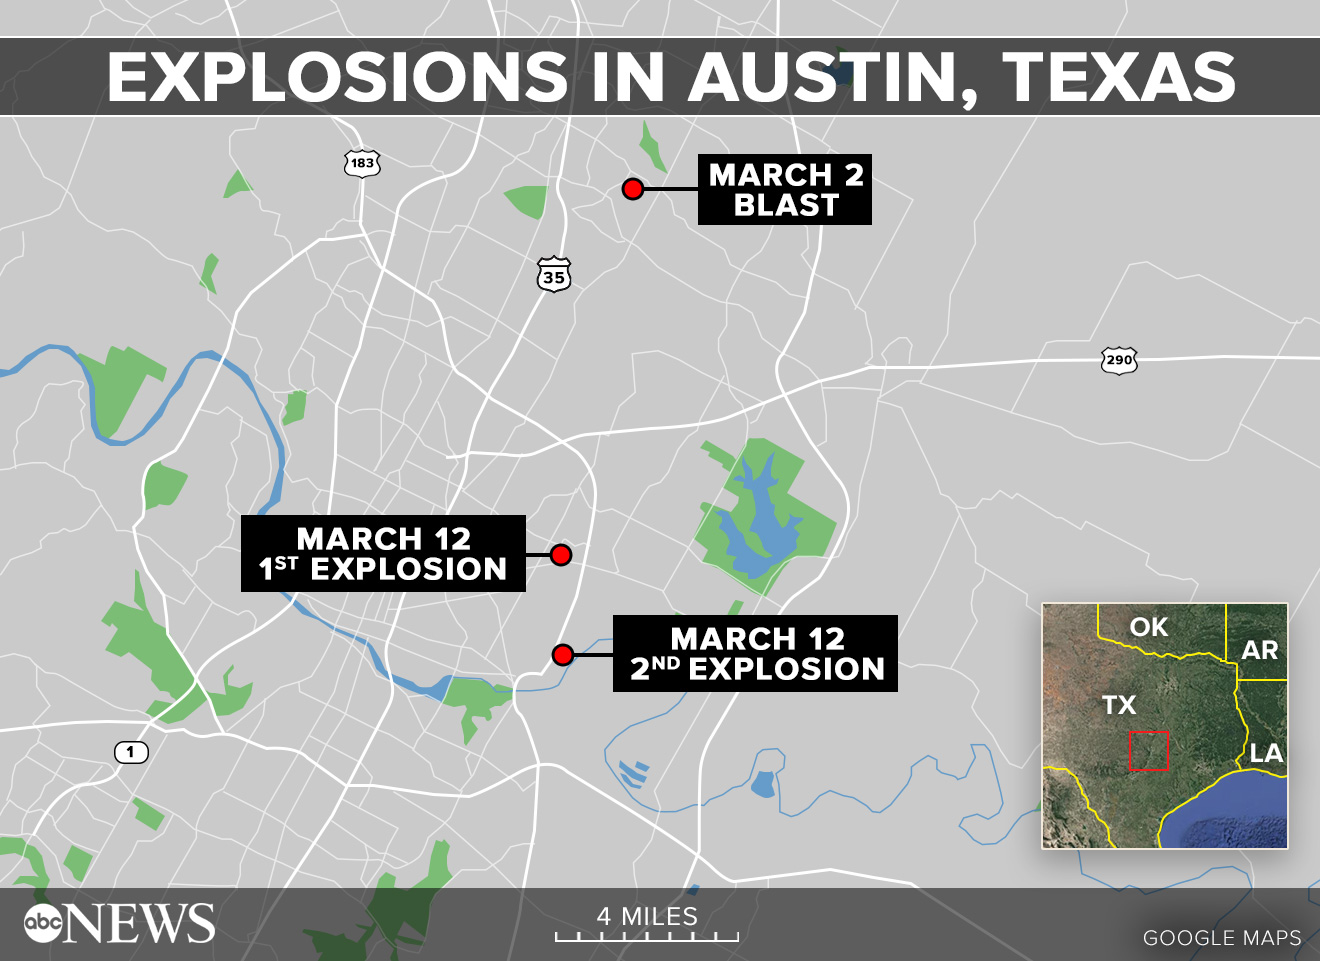 Austin rocked by 3rd explosion in 11 days - ABC News